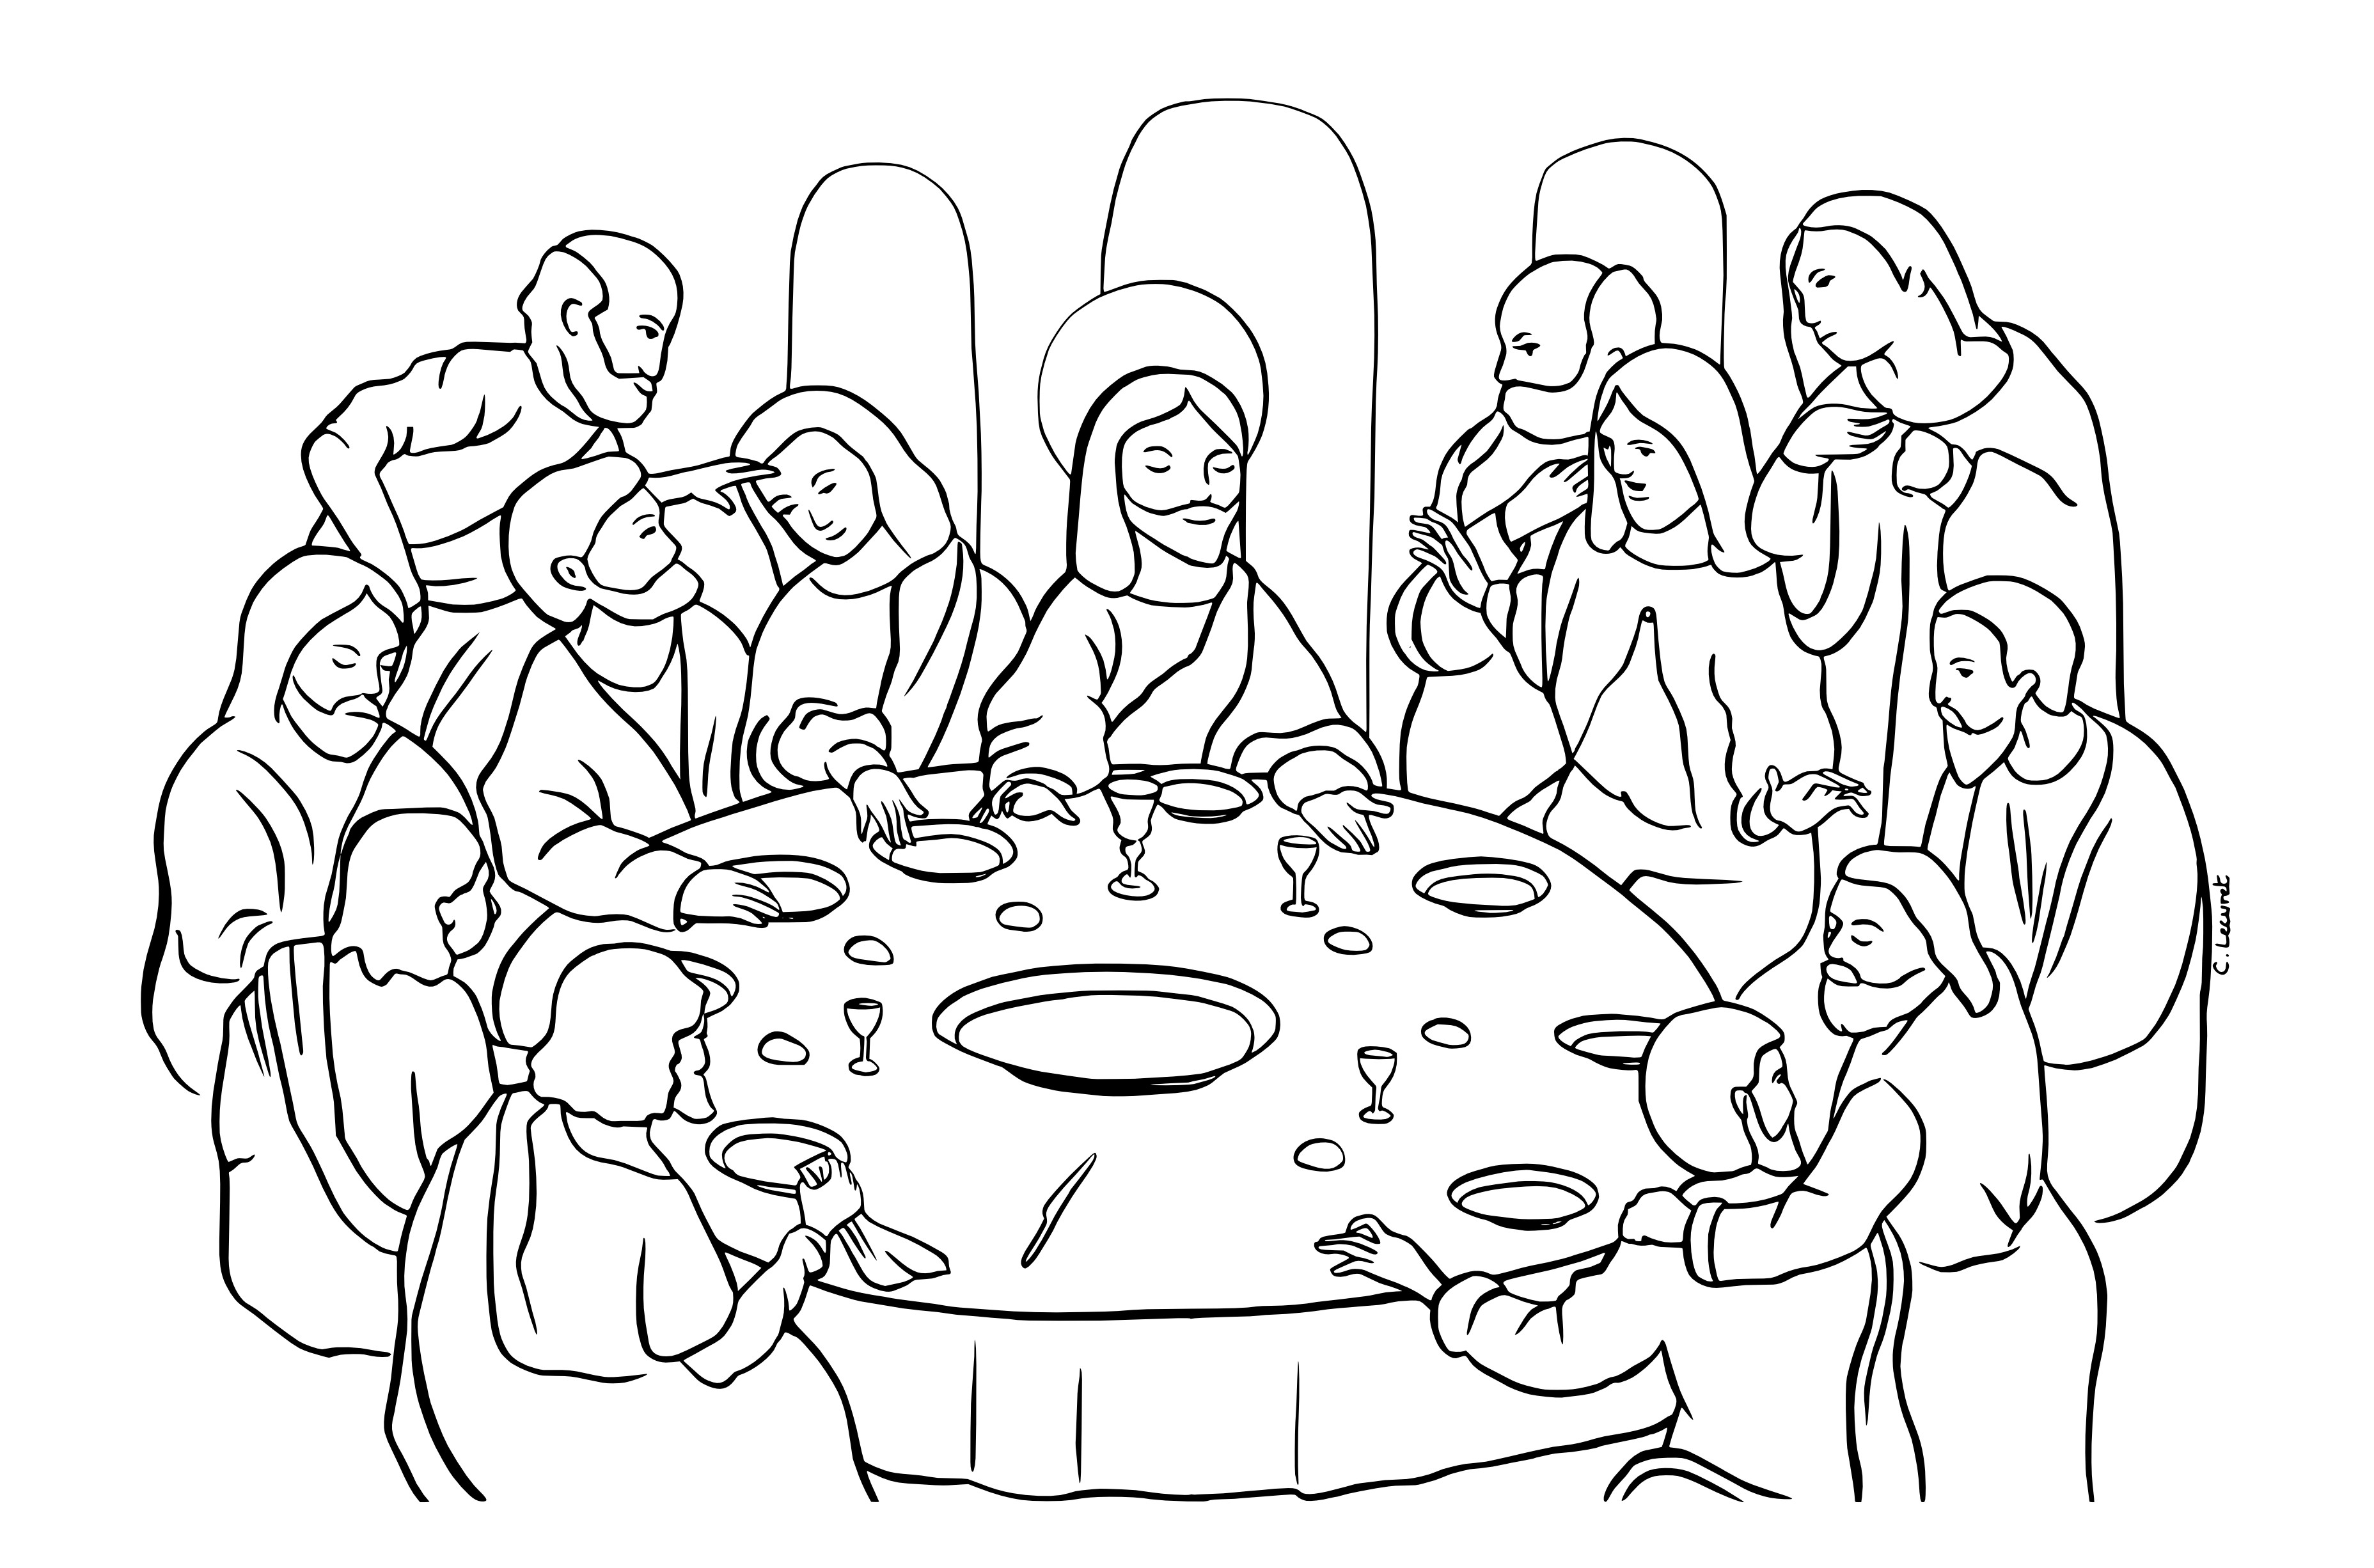 Last Supper Coloring Pages Printable  Coloring The Last Supper